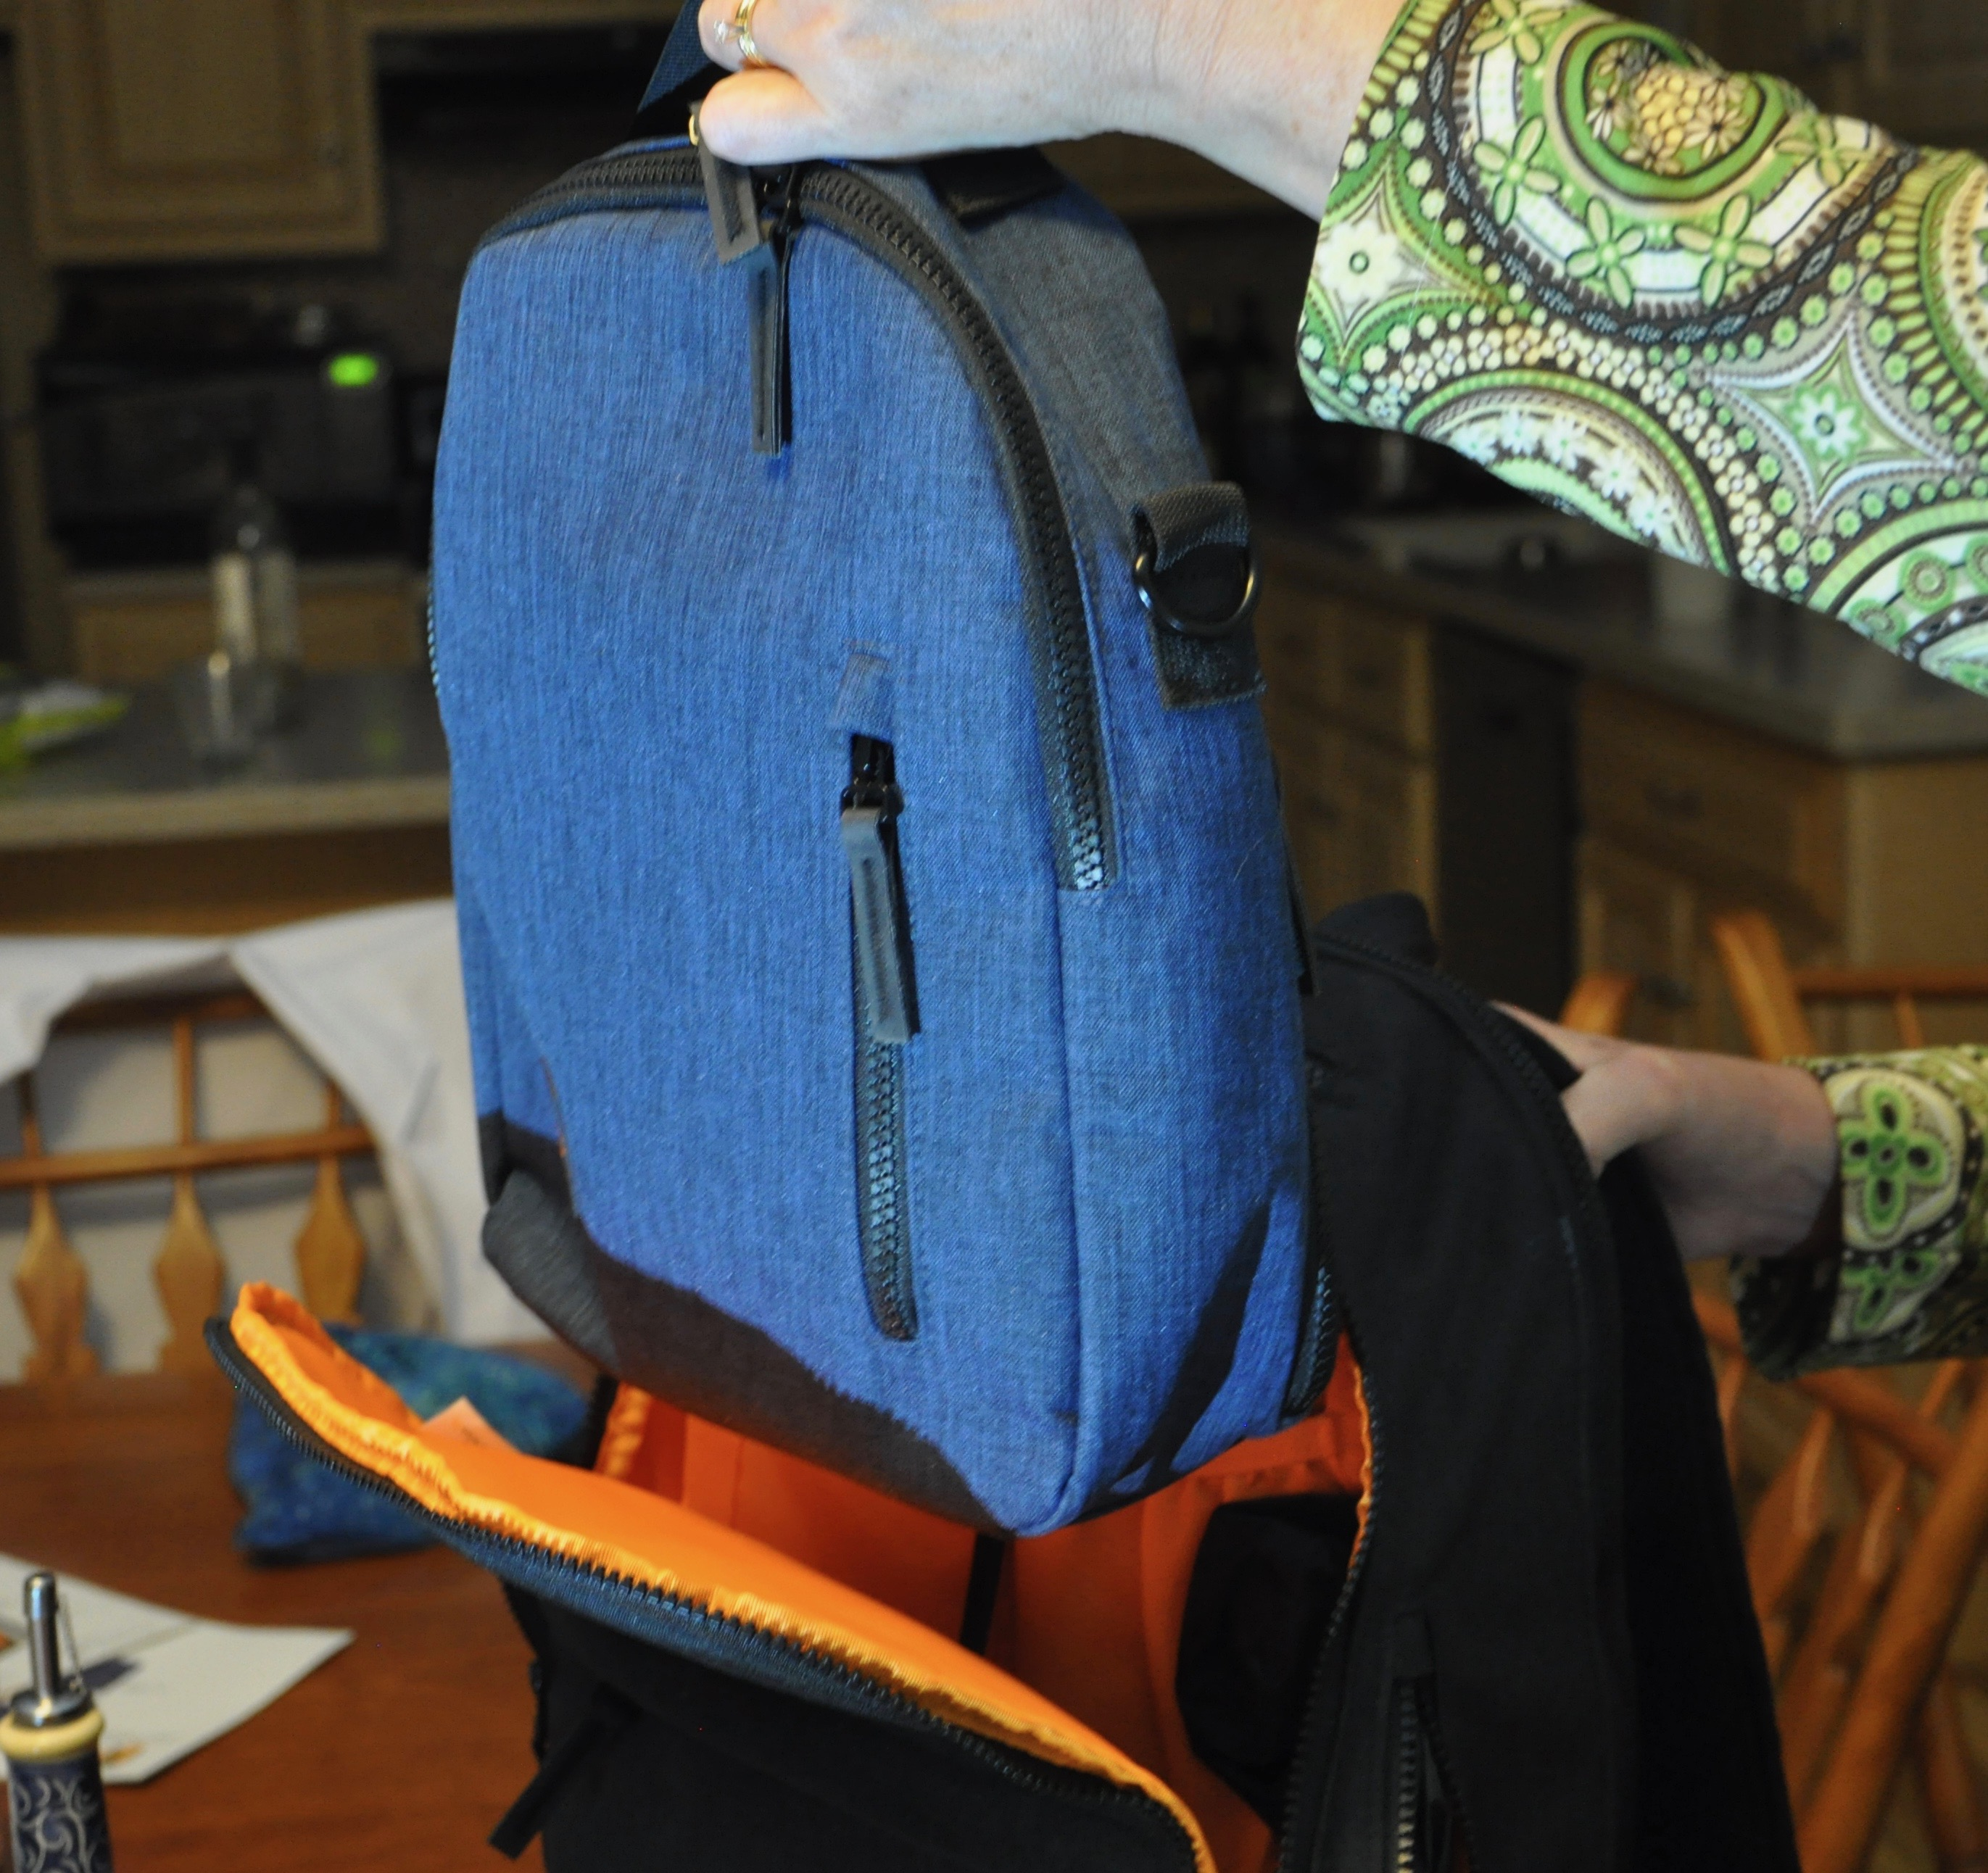 MOS Pack backpack and accessories review – The Gadgeteer